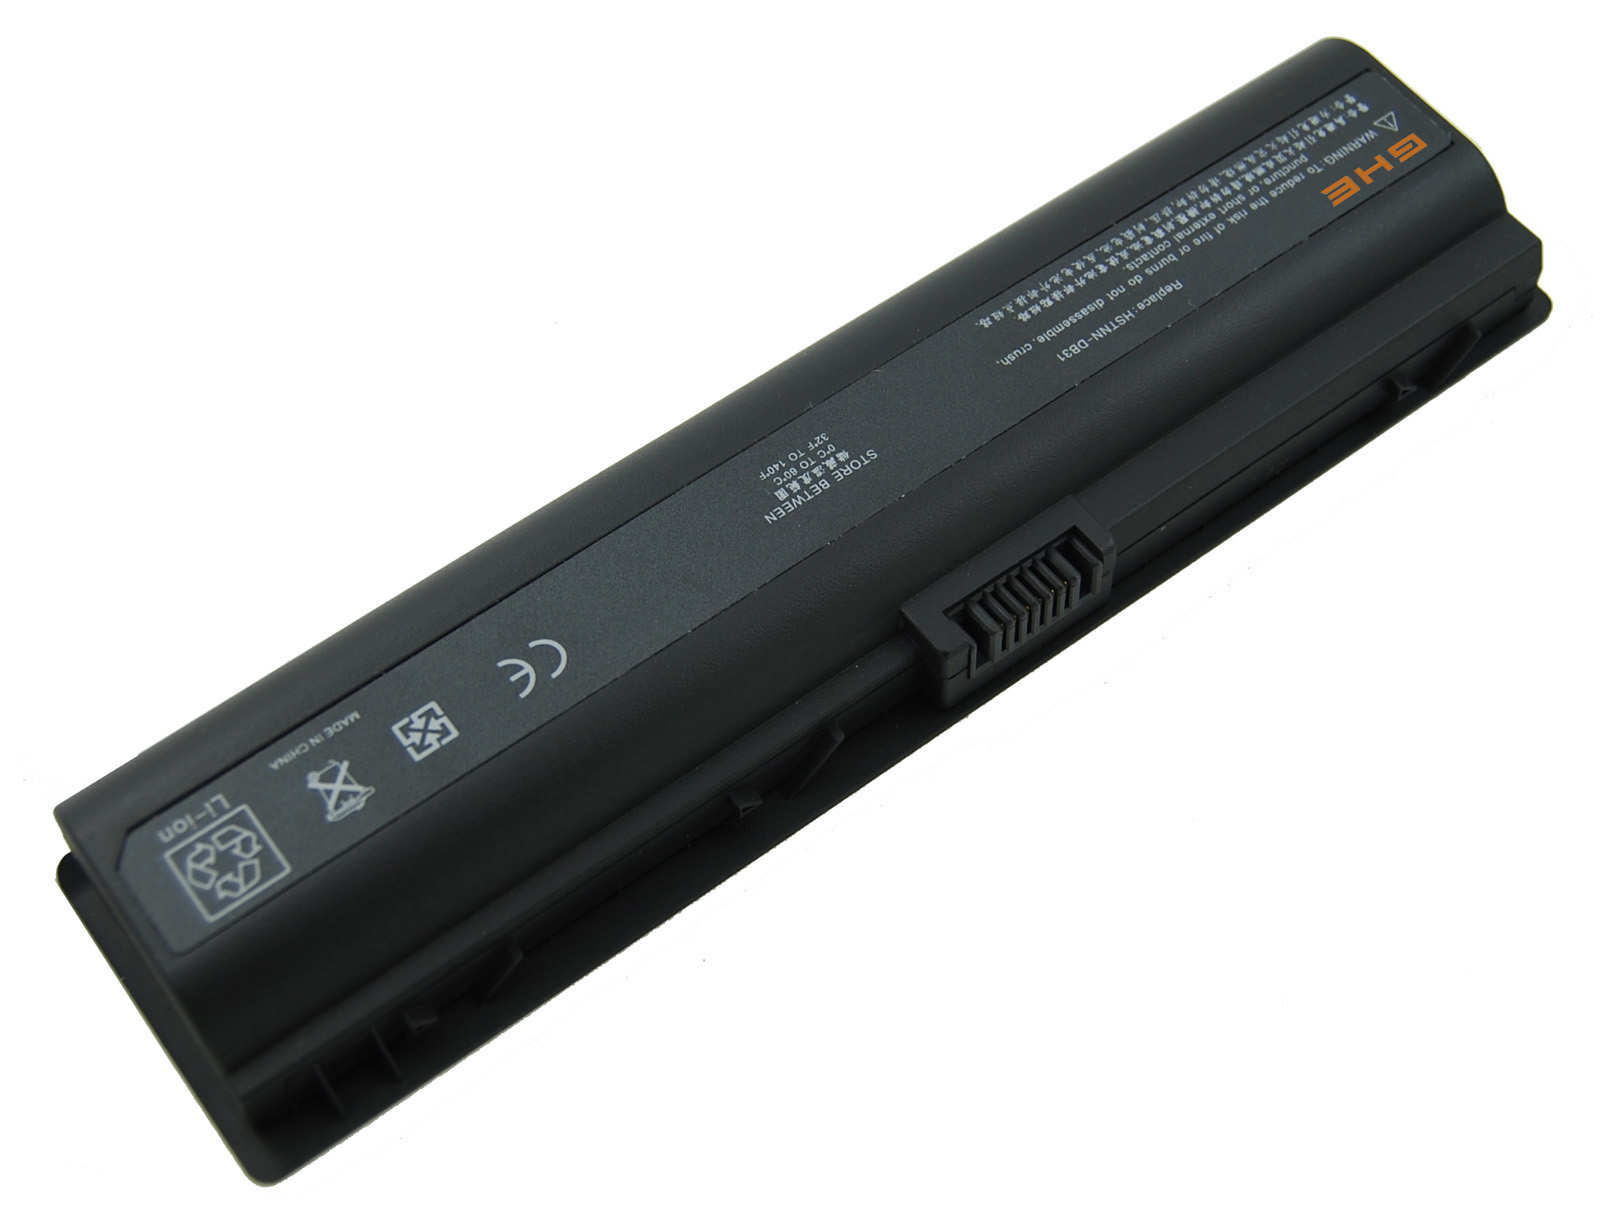 New GHU Battery For HP Notebook DV2000 DV6000 - Lithium ion 6-cell - 4400 mAh